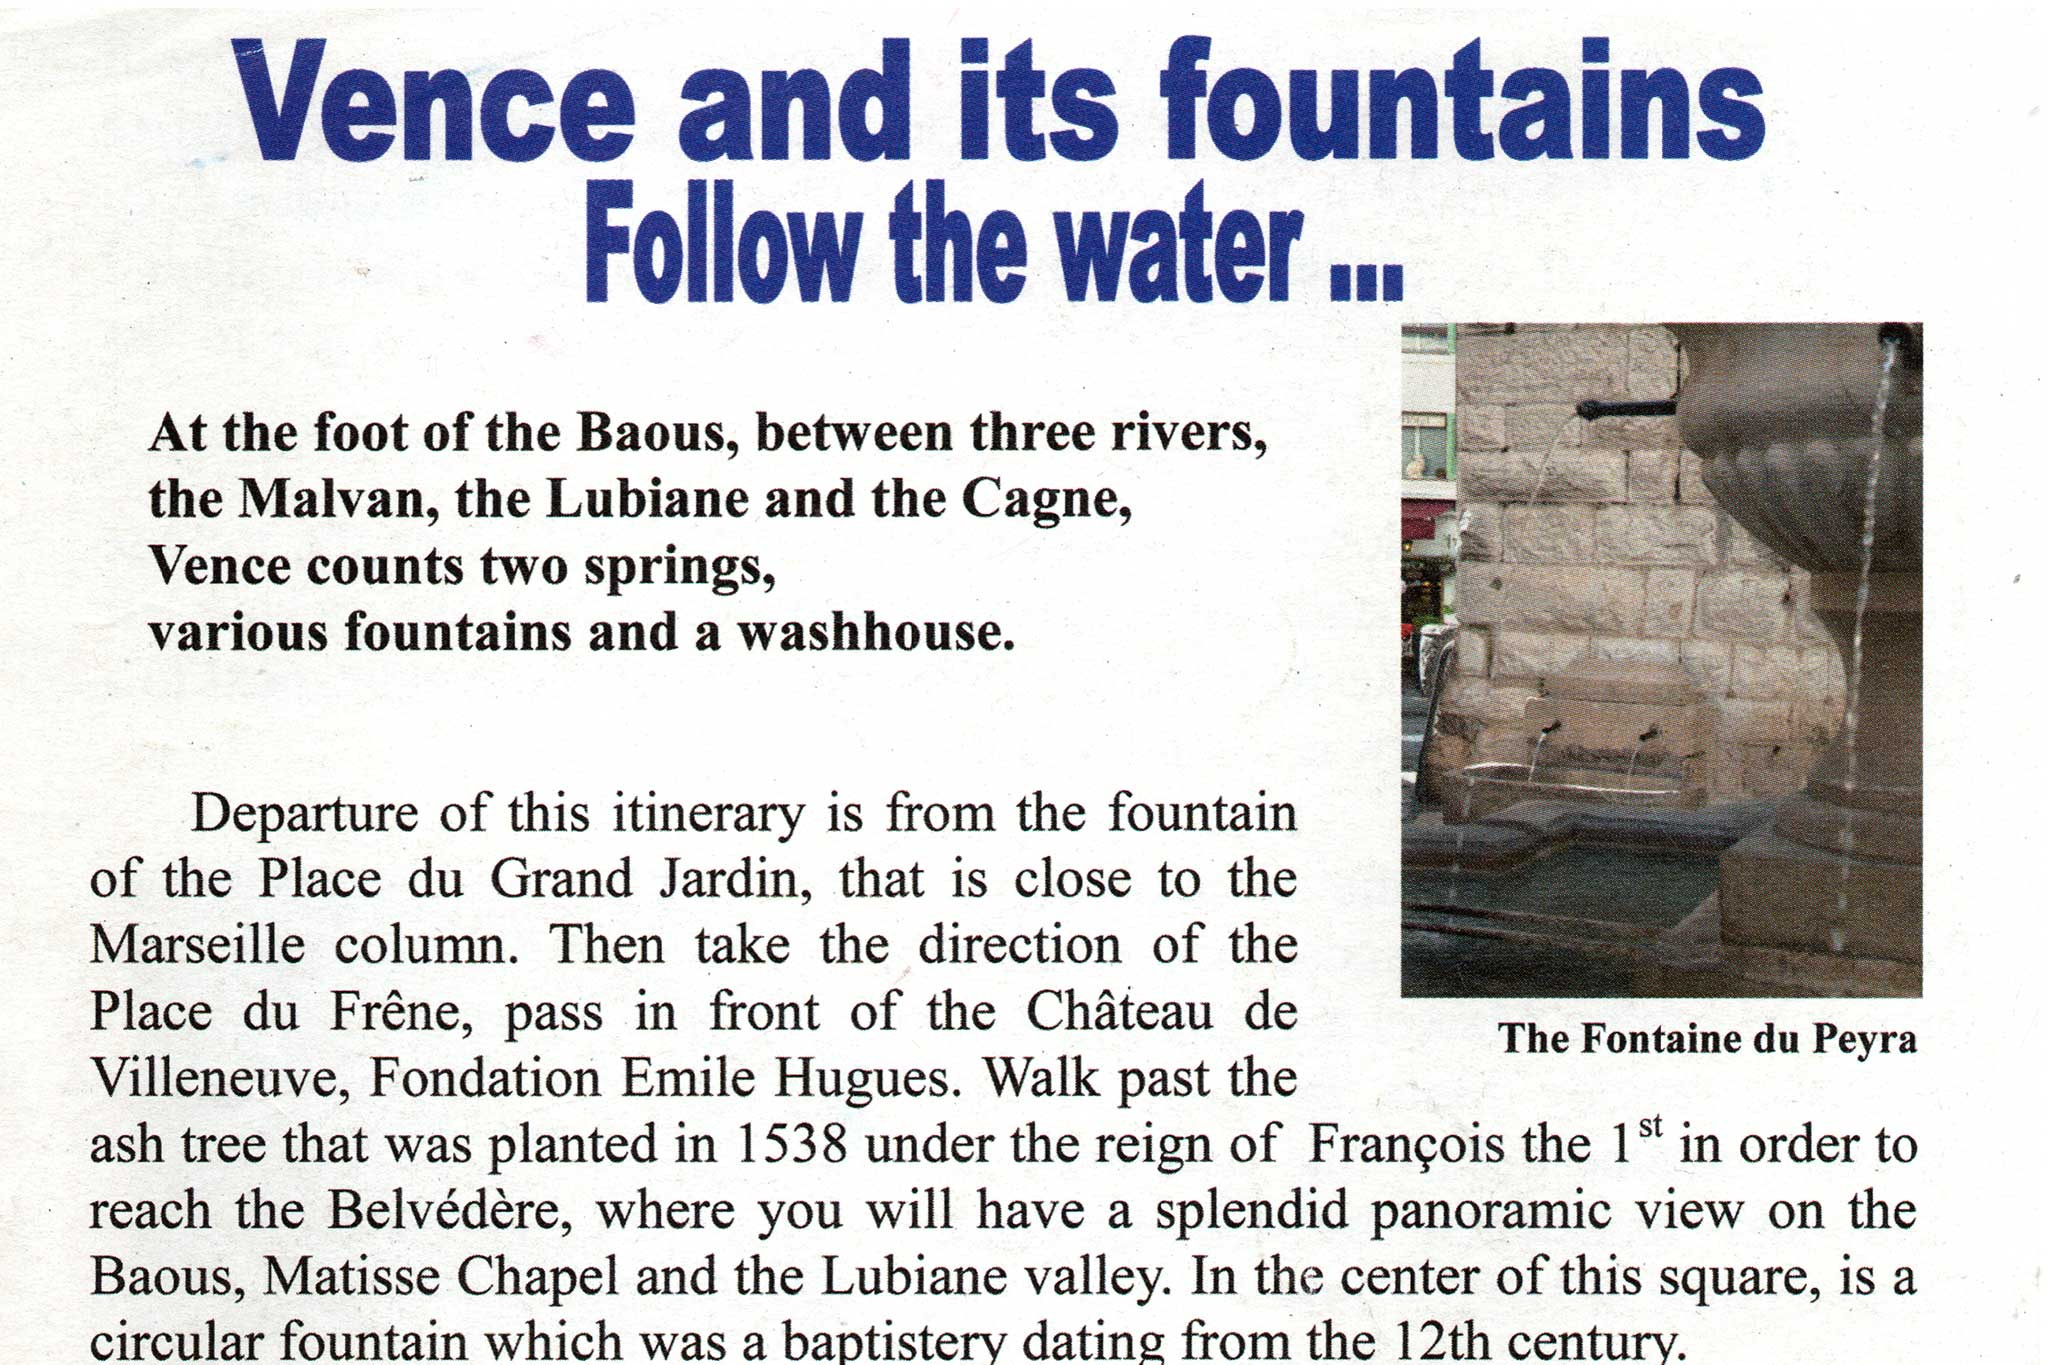 Steve and Carole in Vence - 2010 Vence And Its Fountains Flier